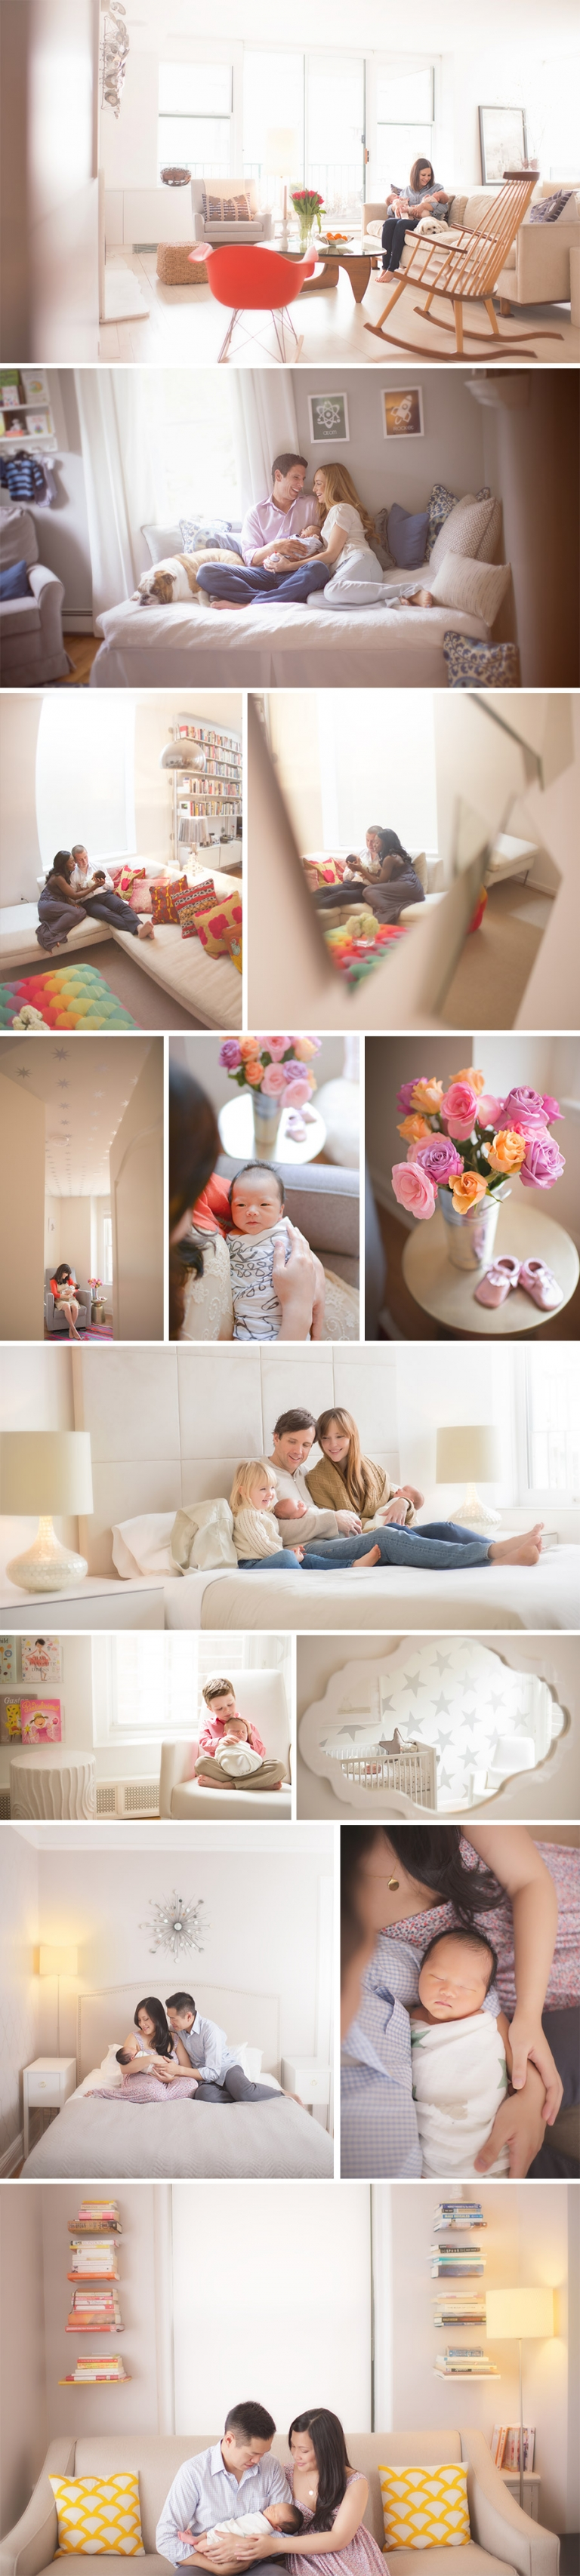 nyc best family photographer home